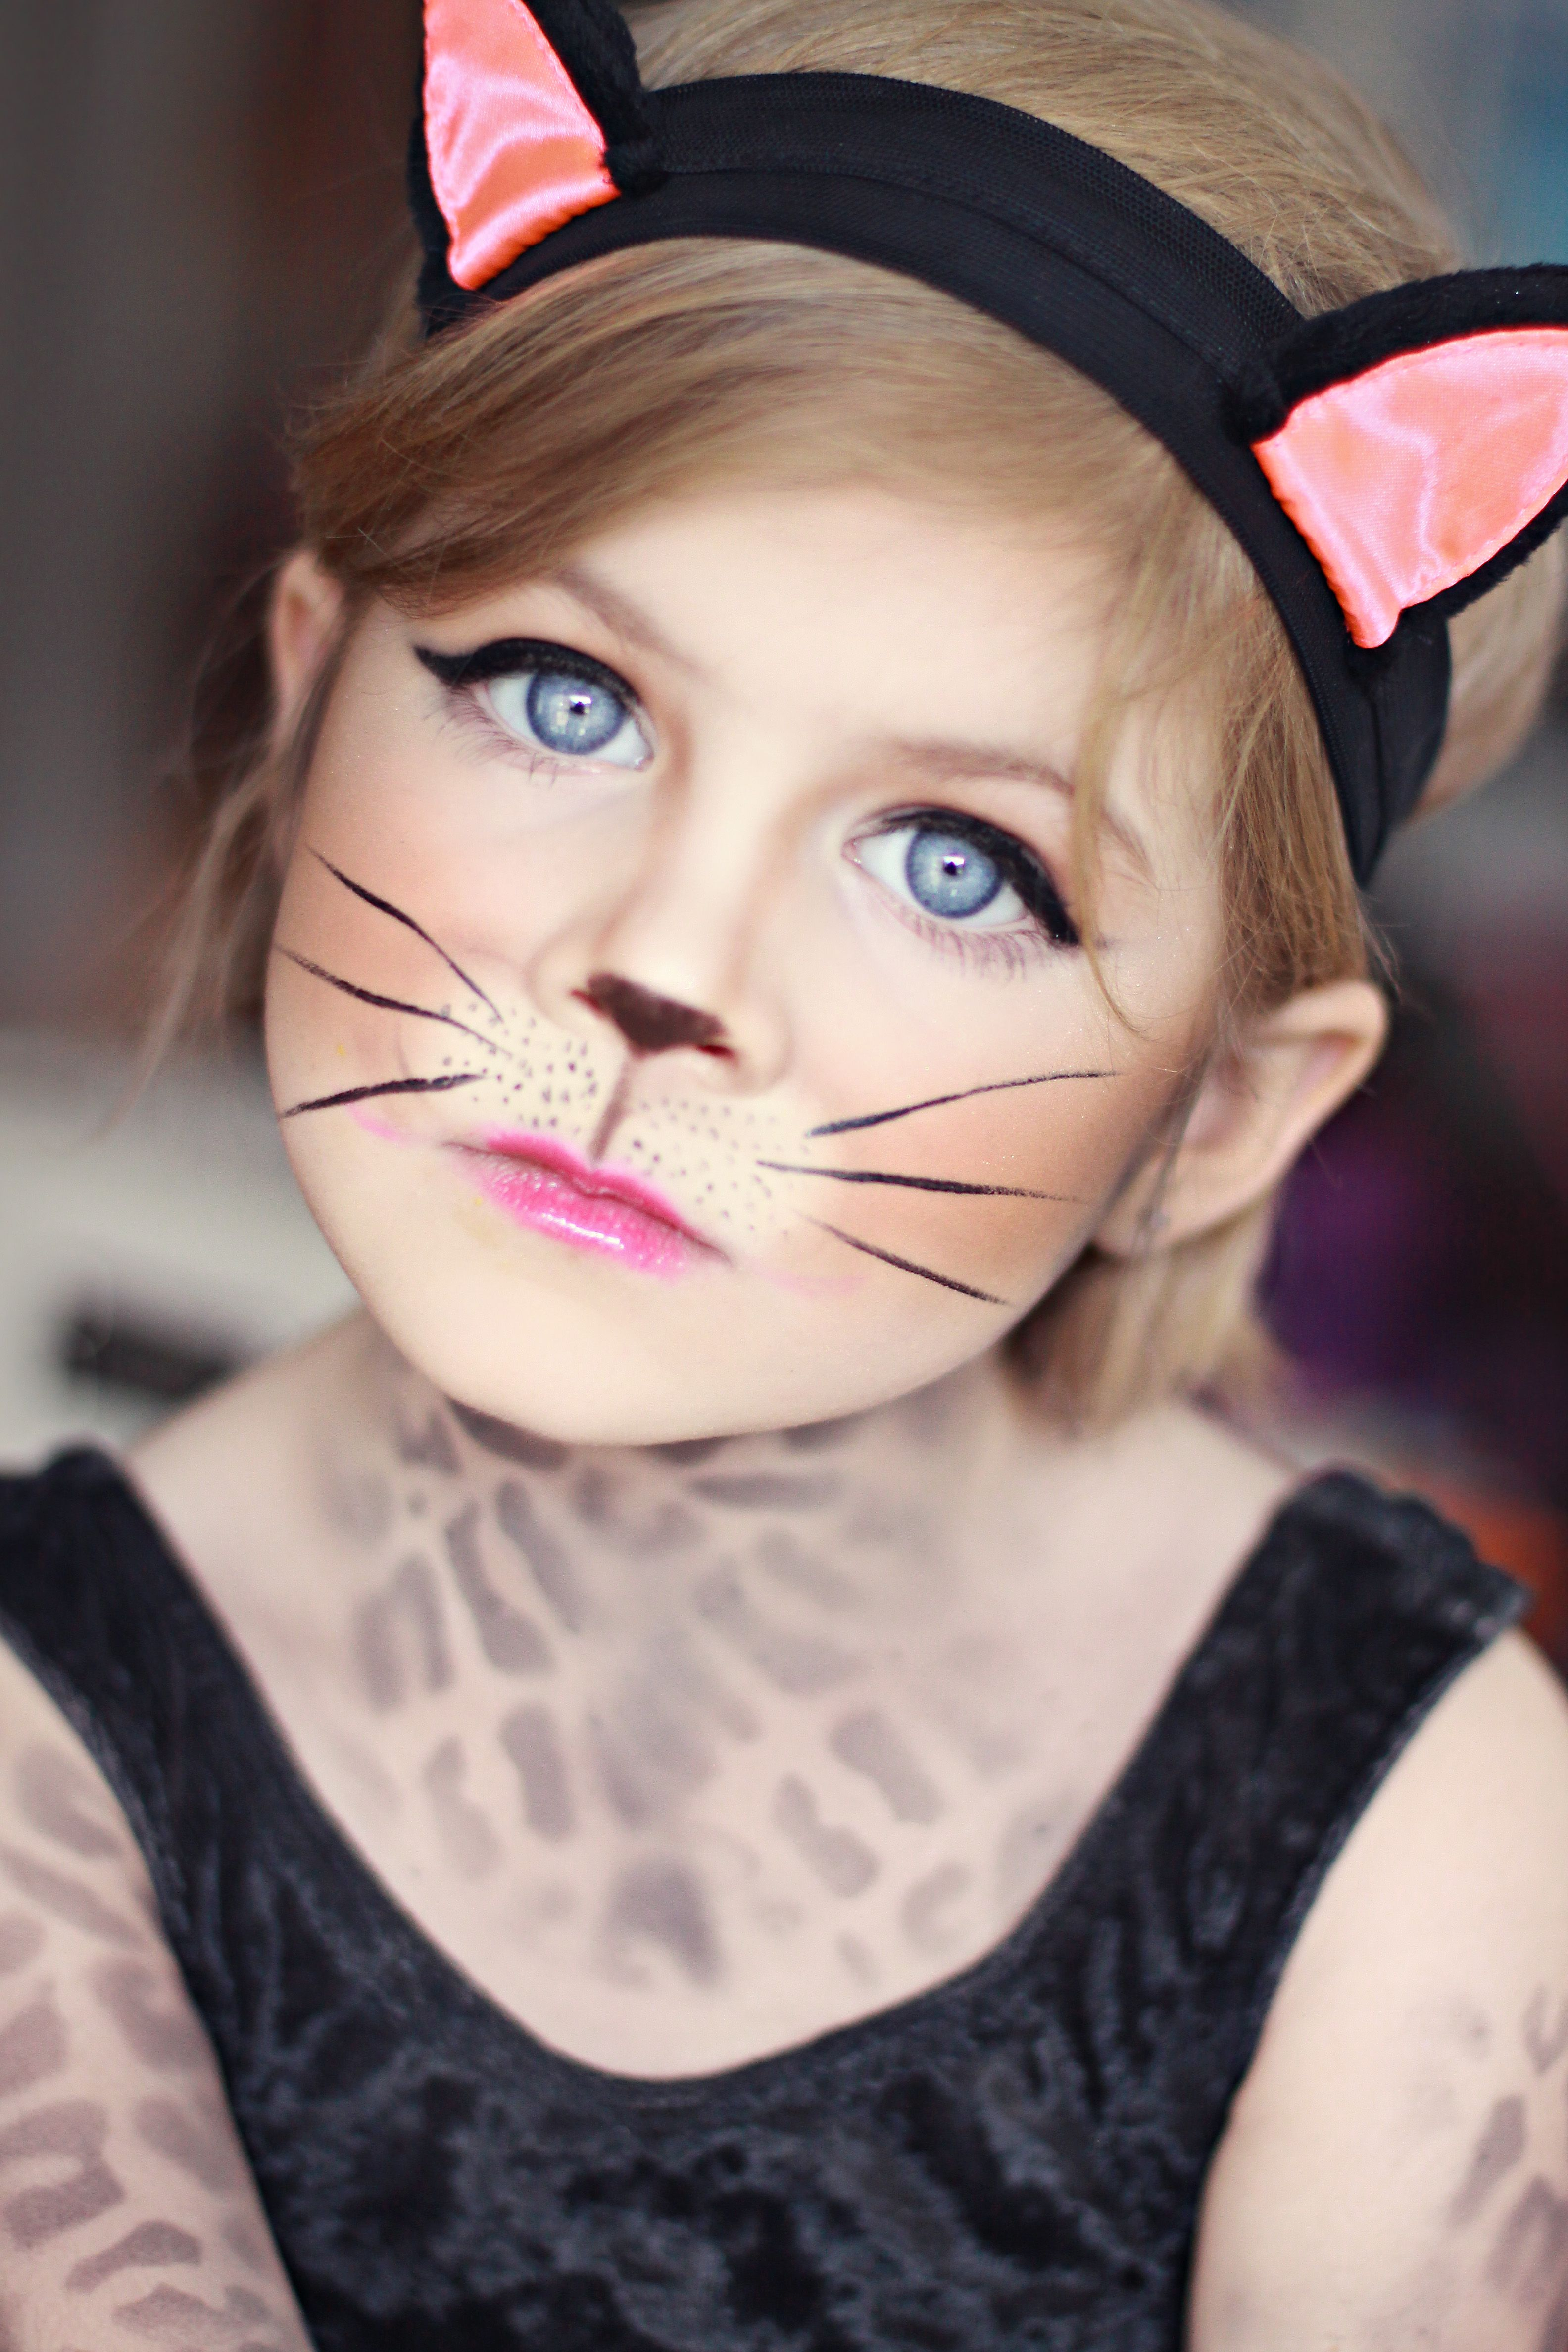 Leopard Makeup Cat Makeup Kid Costume Www Sunkissedandmadeup Com Cat Halloween Makeup Kitty Face Paint Cat Costume Kids